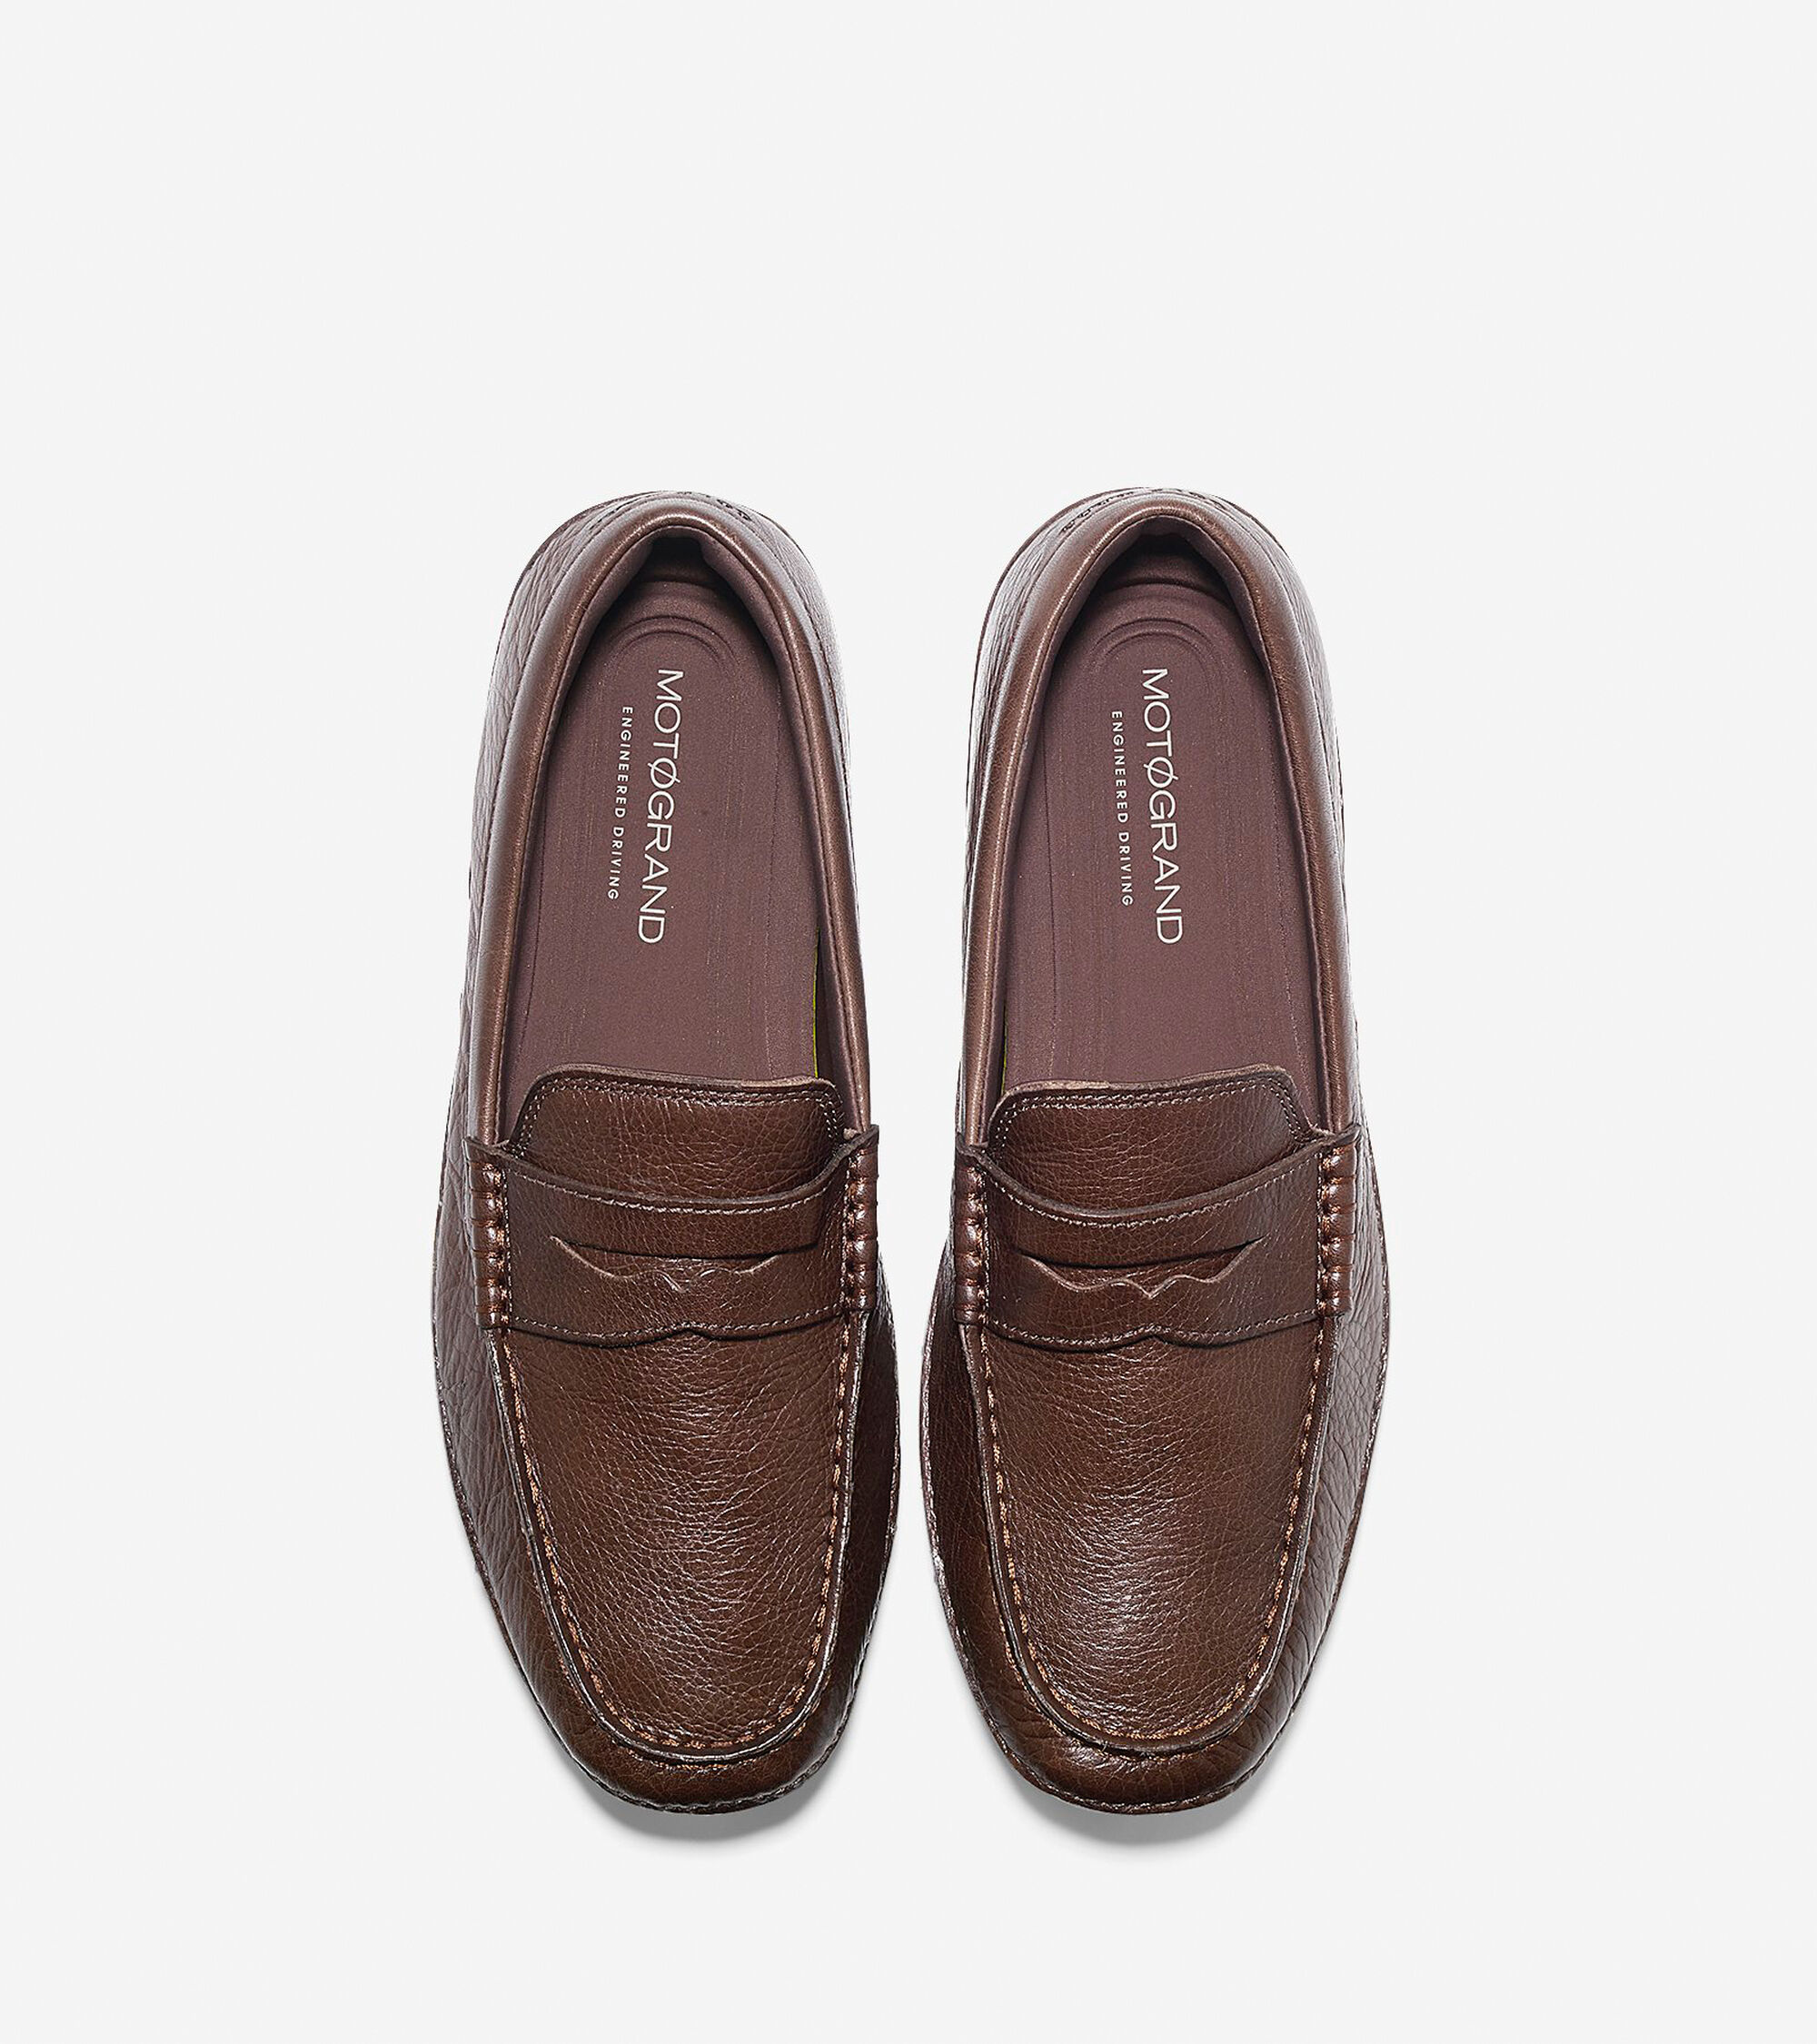 660719594c8 Men s MotoGrand Penny Drivers in Chestnut Leather